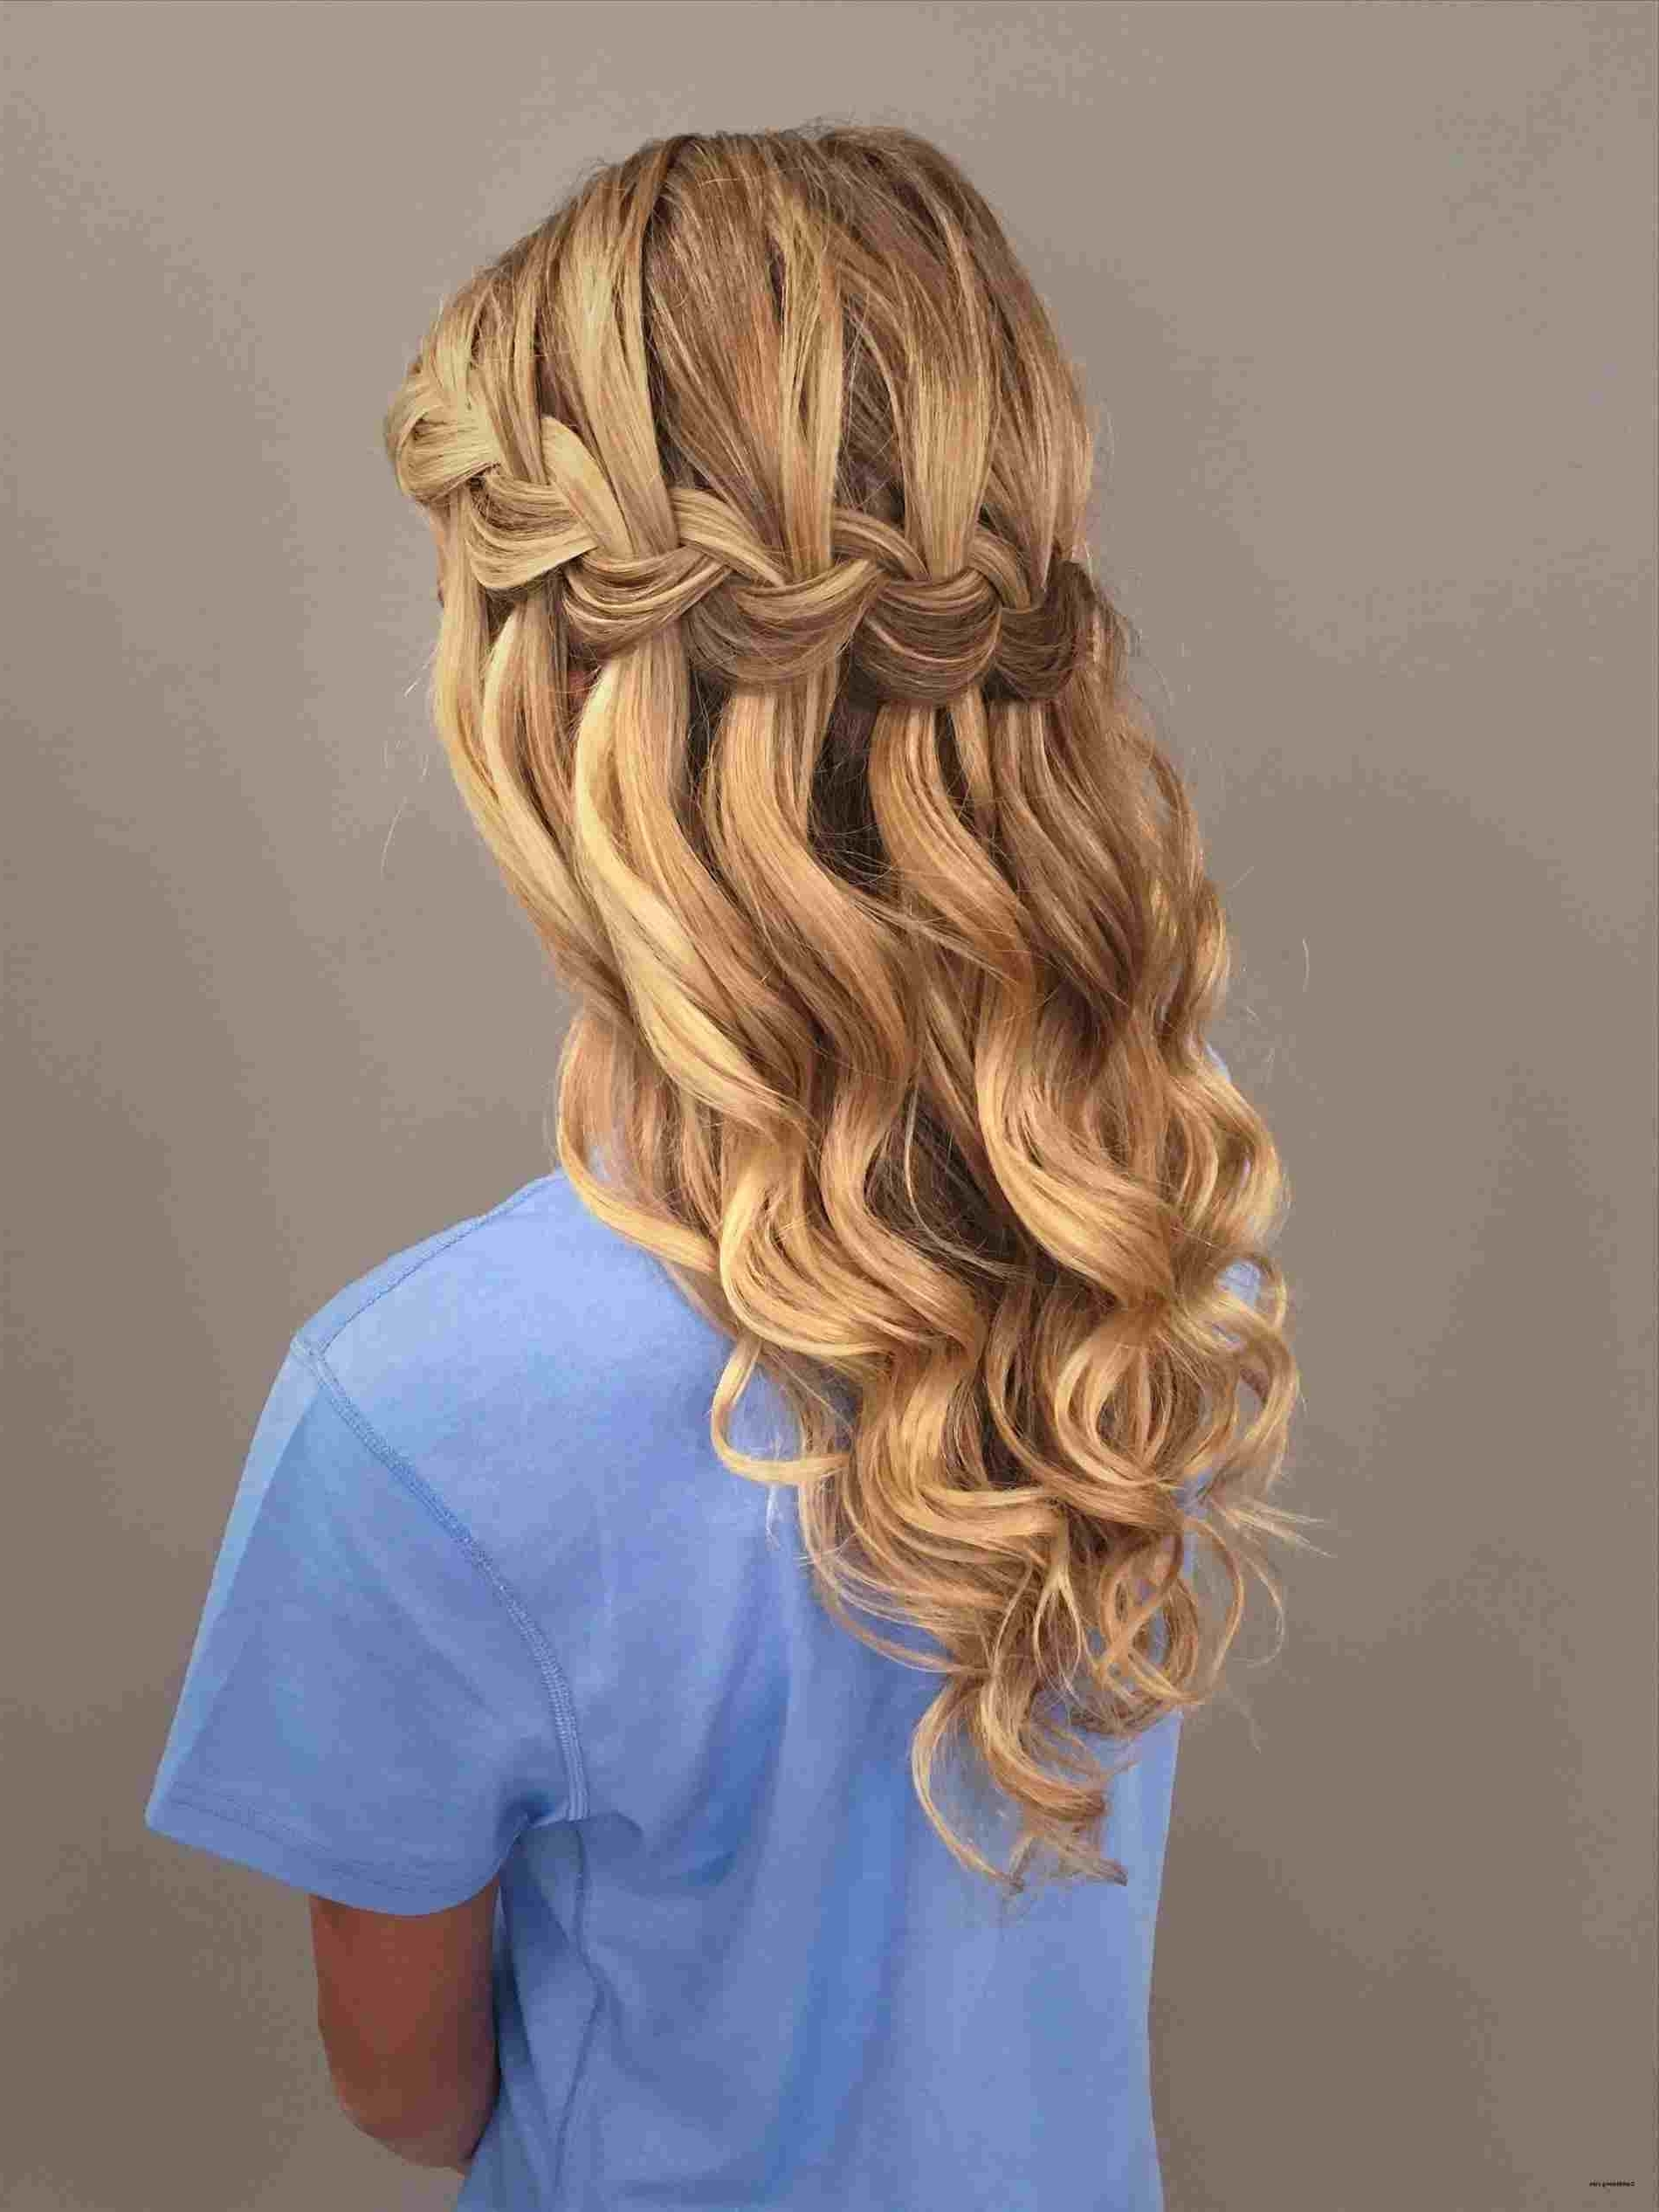 Best And Newest Braid And Curls Hairstyles With Regard To Curly Hairstyles For Prom With Braid (View 6 of 15)